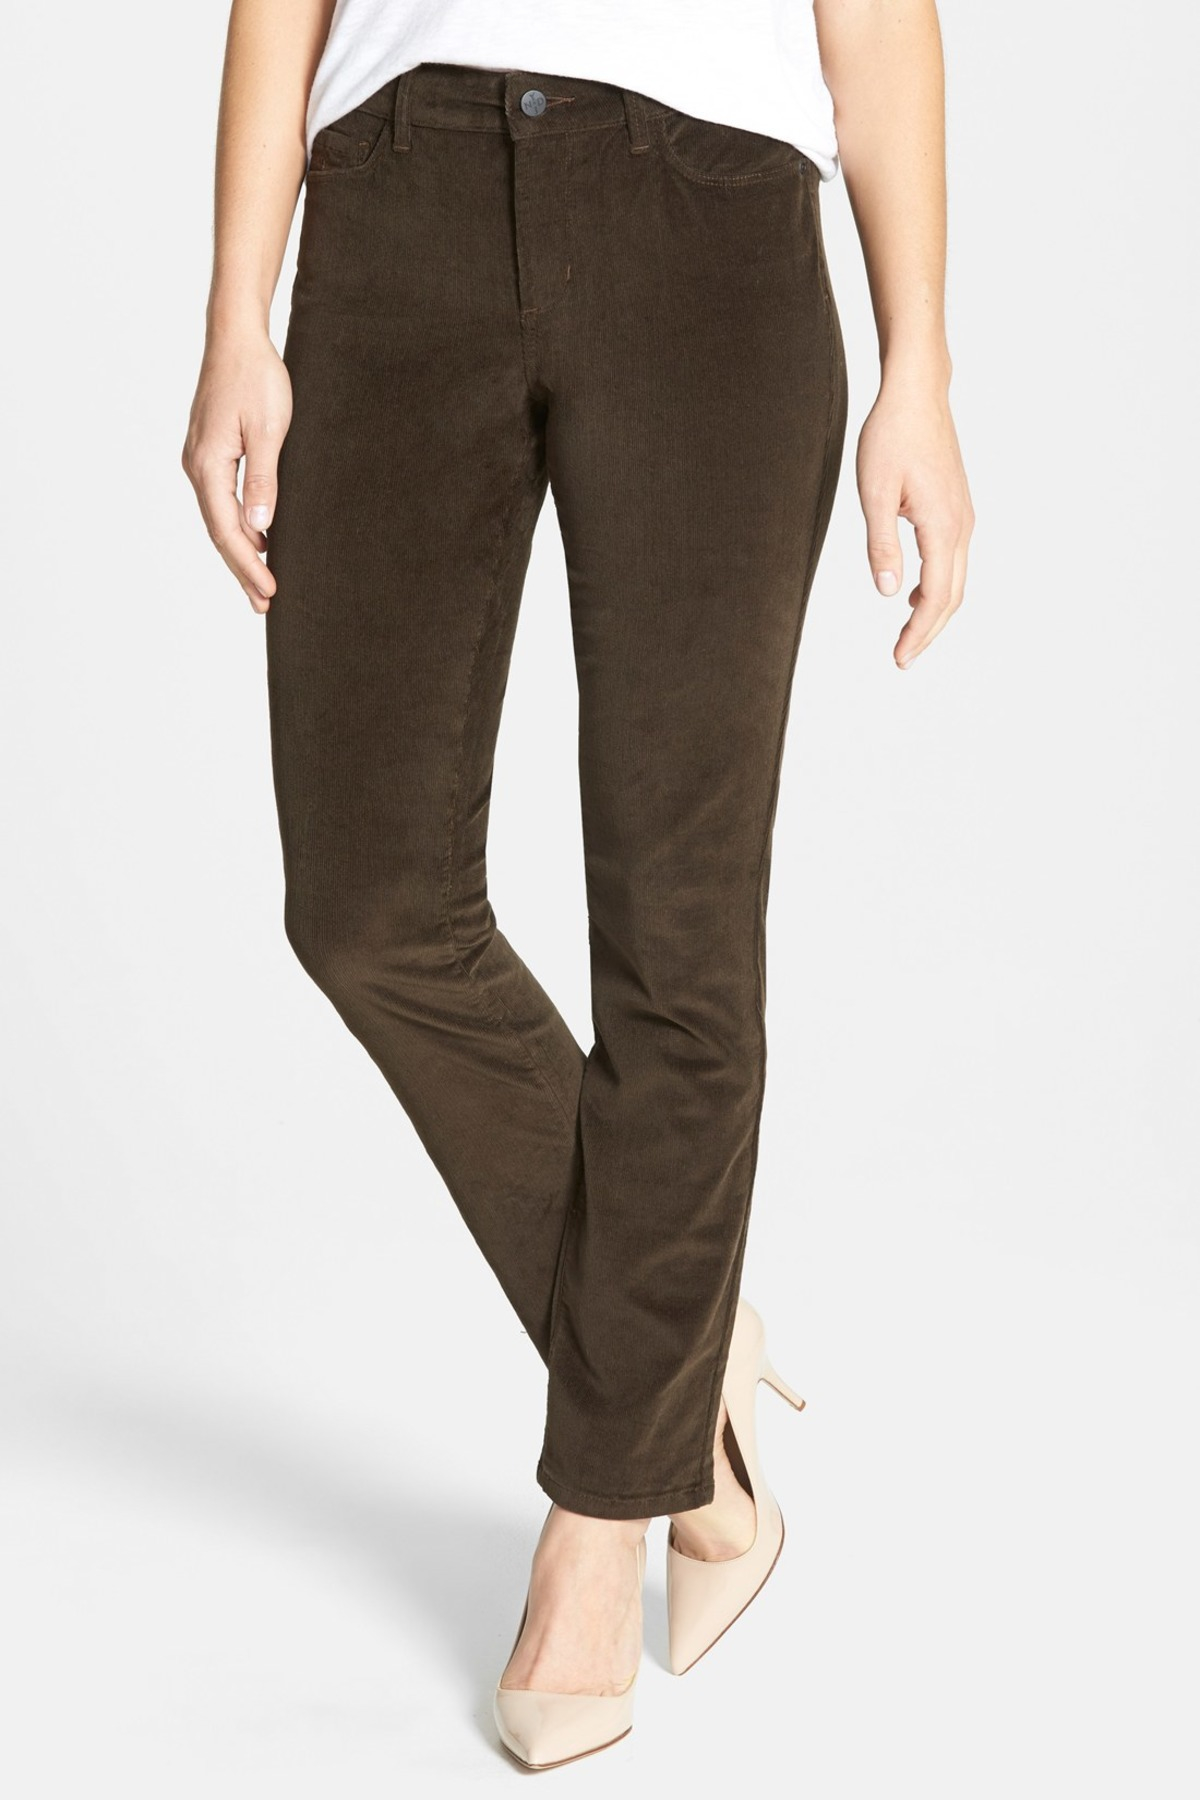 These corduroy pants for women feature curve-sculpting lines cut from sumptuously soft fabric that's infused with a touch of stretch. You'll enjoy how amazing the flattering fit feels as it comfortably moves with you throughout the day or night.